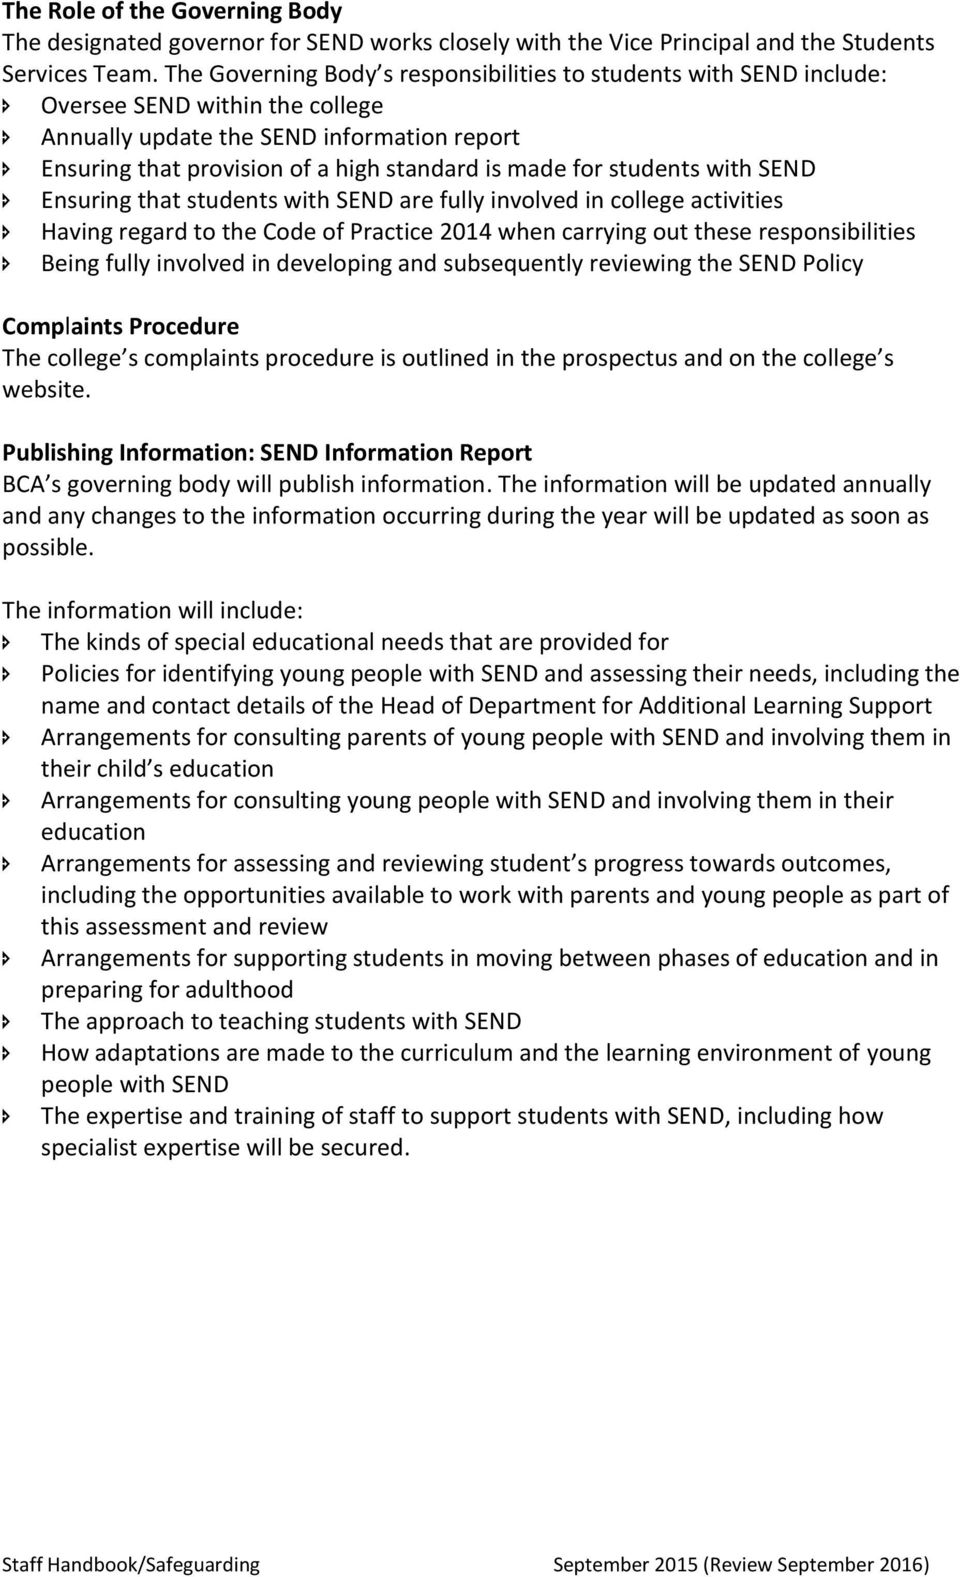 students with SEND Ensuring that students with SEND are fully involved in college activities Having regard to the Code of Practice 2014 when carrying out these responsibilities Being fully involved